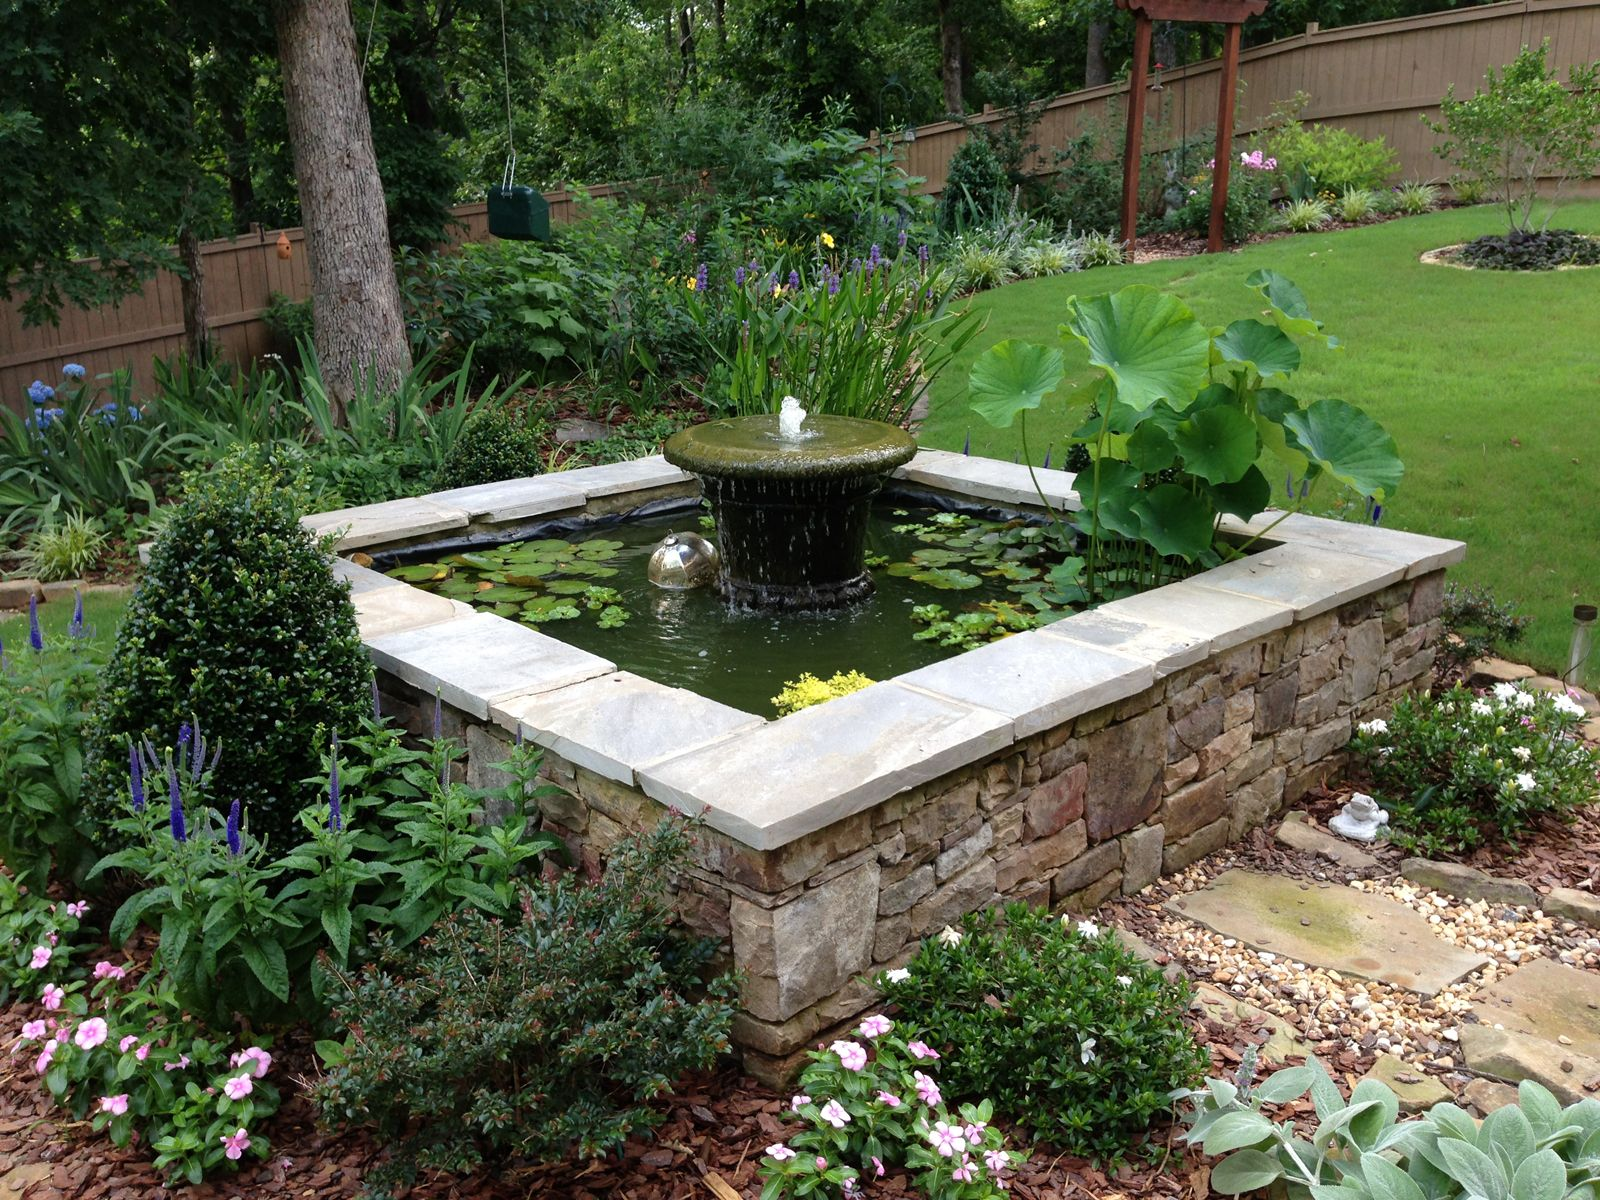 Square water pool carol bill 39 s garden in georgia for Patio koi pond